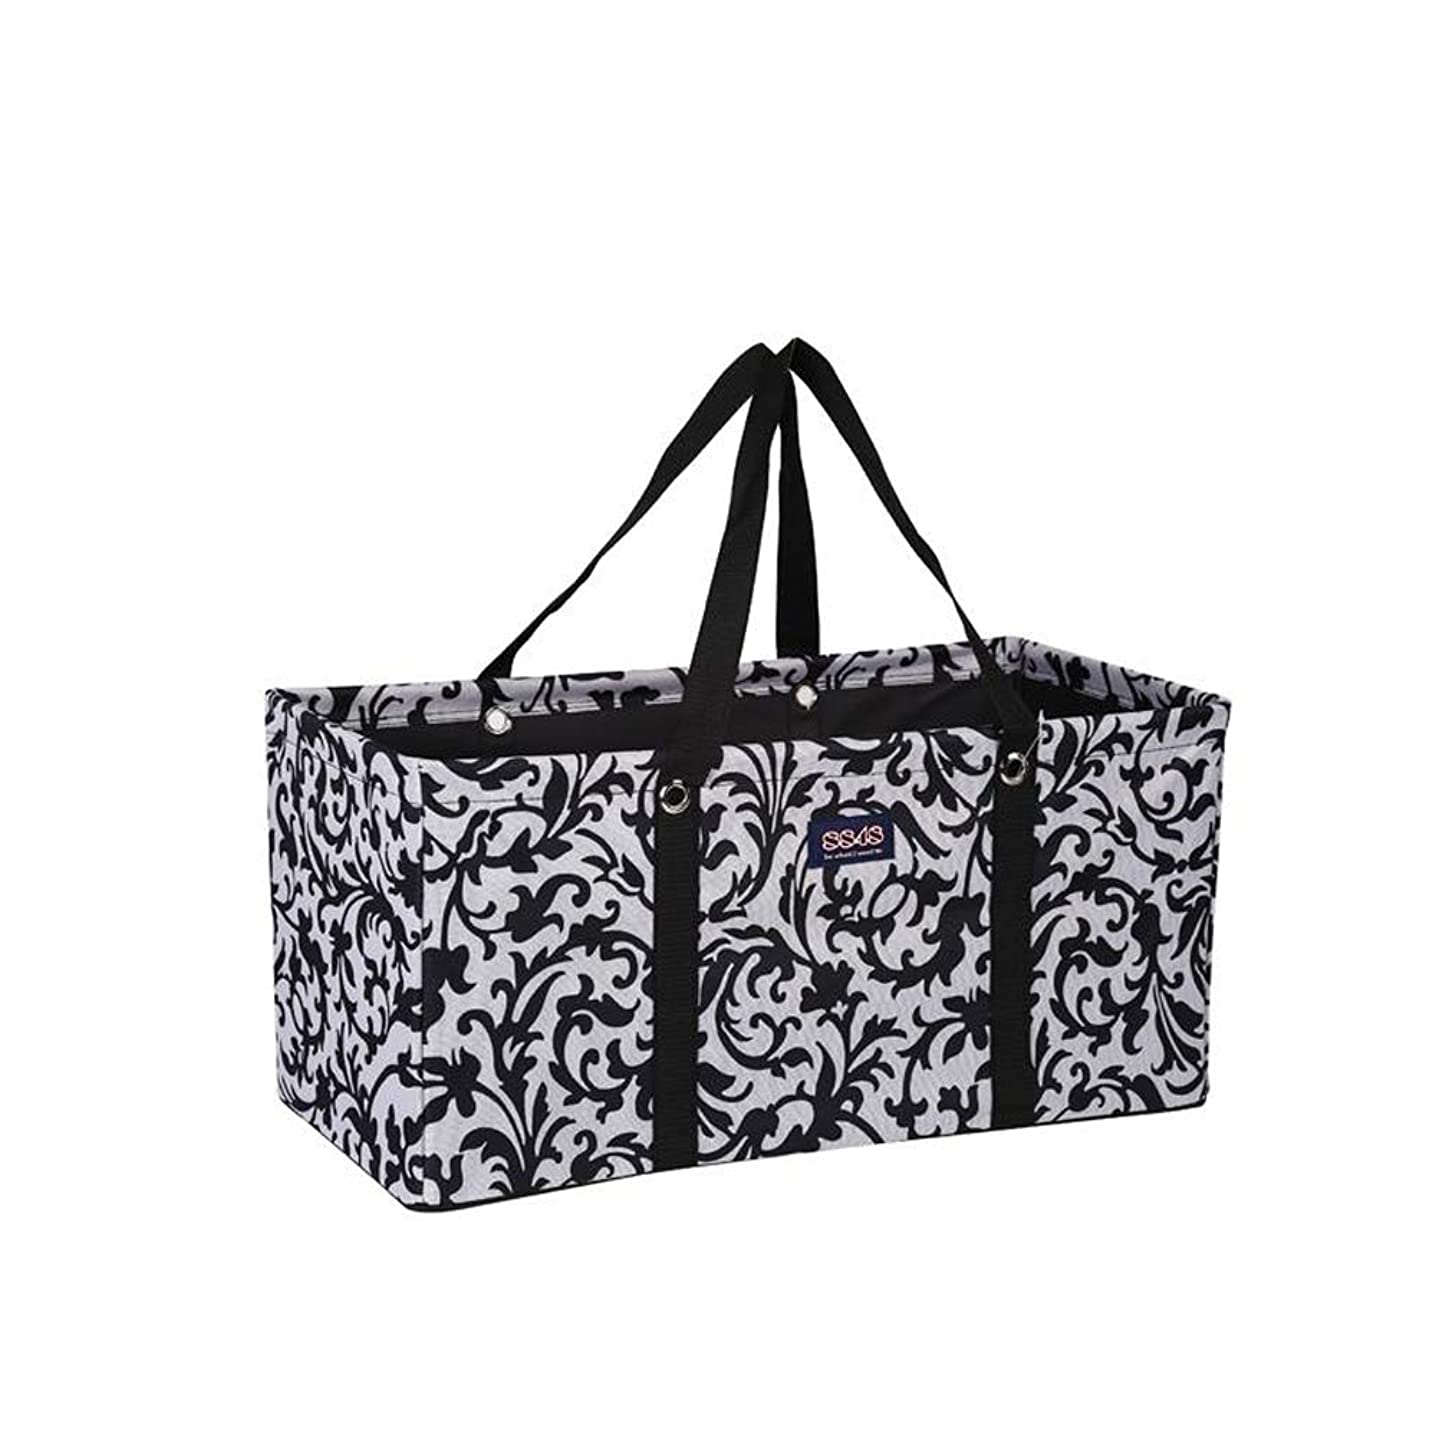 All Purpose Utility Tote/Utility tote/Large tote/Beach Bag/Reusable Shopping Bags (Black/White Flowers-R007, 22